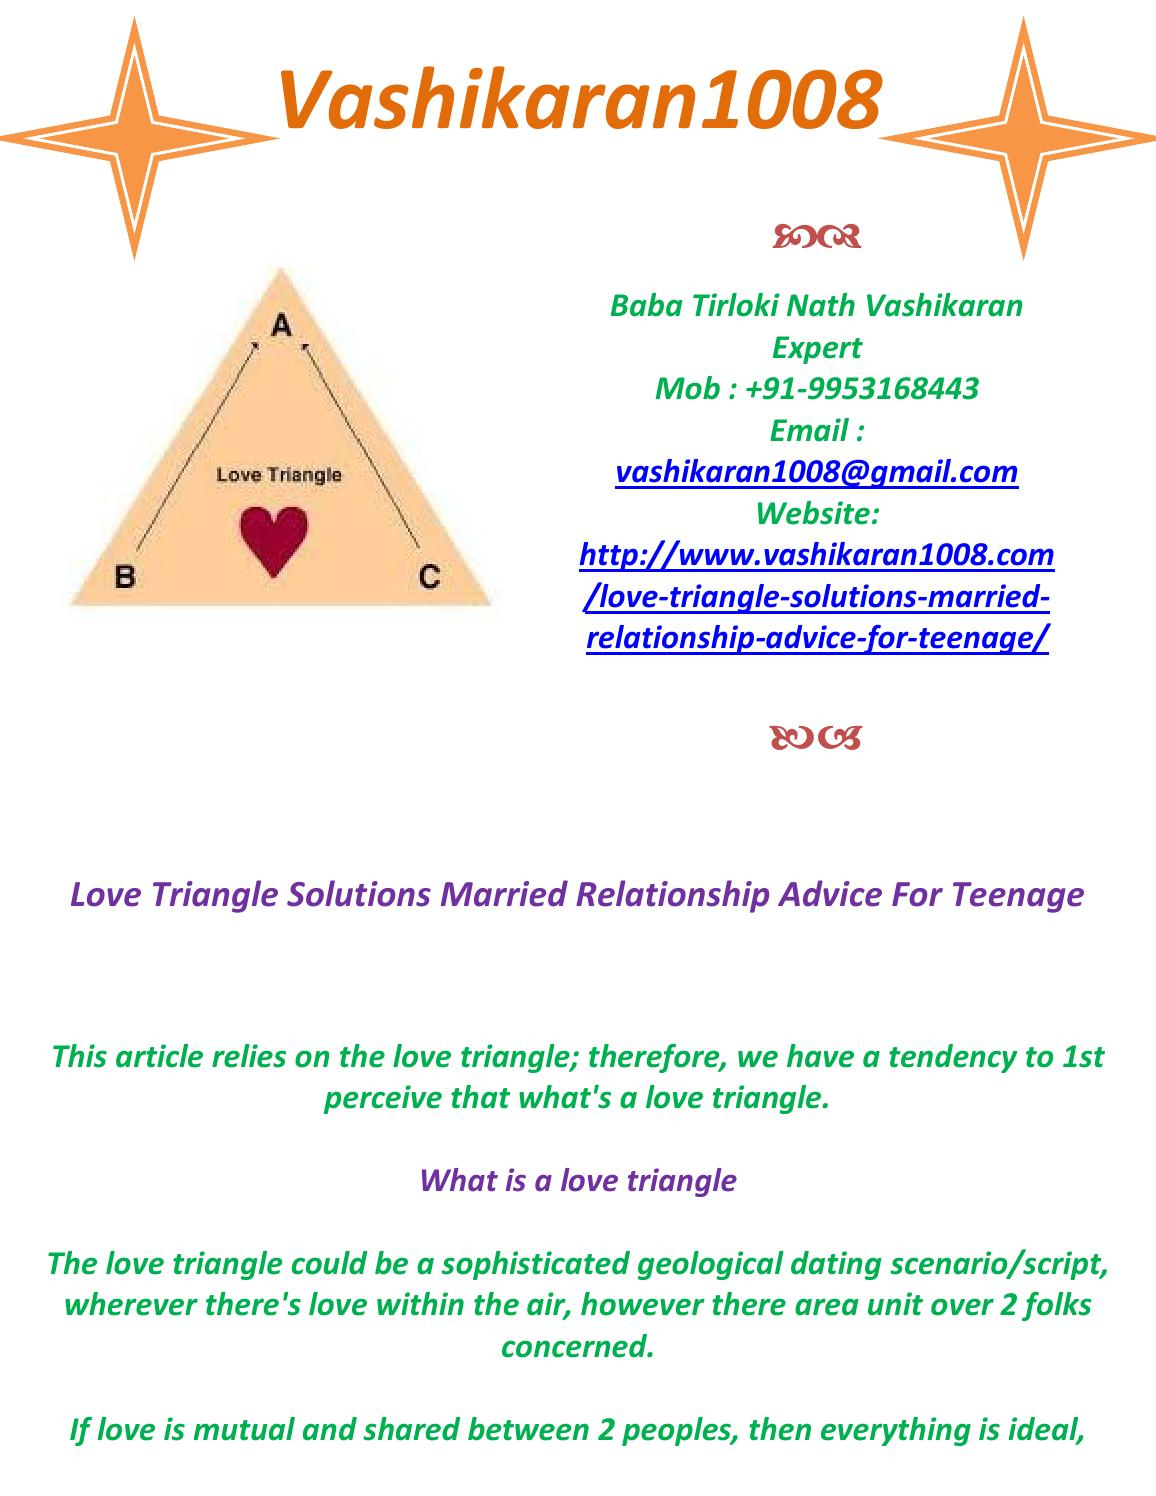 Love Triangle Solutions Married Relationship Advice For Teenage -  +919953168443